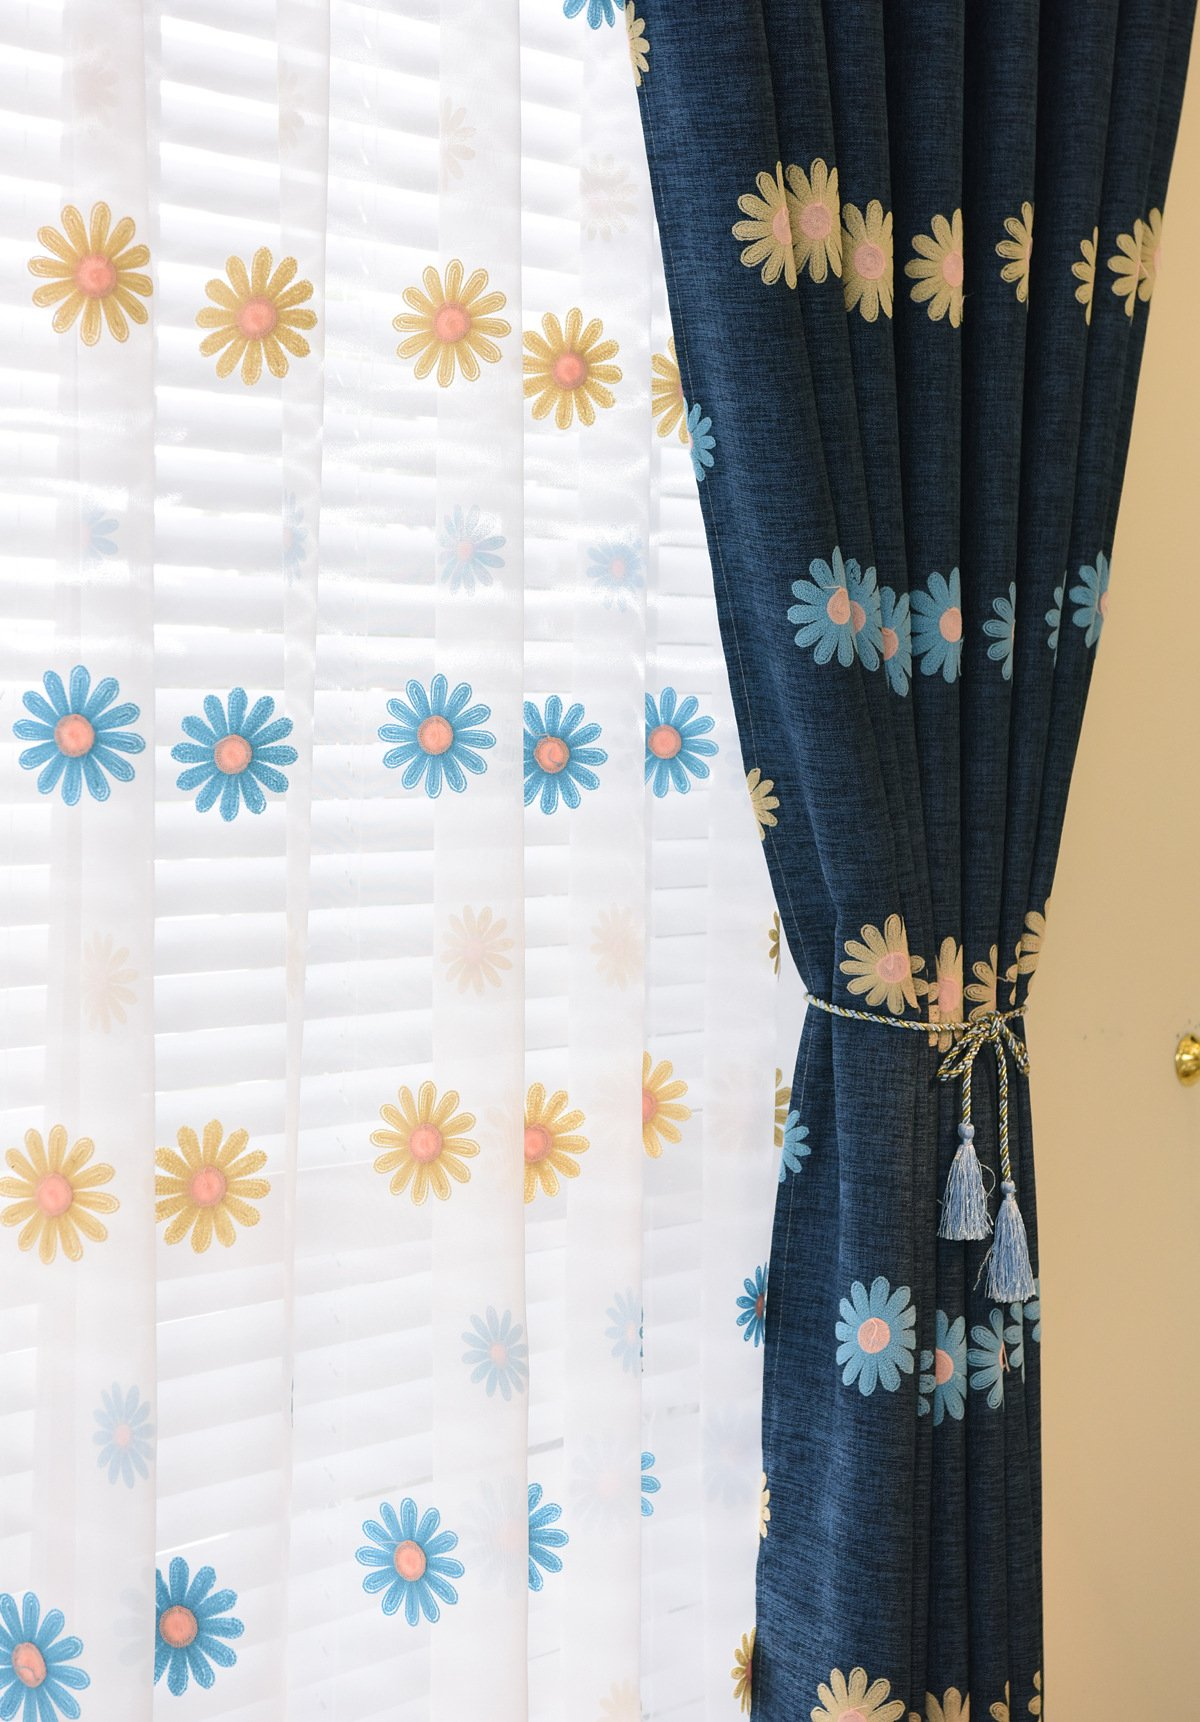 ASide BSide Leisure Style Rod Pocket Top Sunflowers Embroidered Sheer Curtains Transparent Window Decoration For Sitting Room Child Room and Houseroom (1 Panel, W 52 x L 84 inch, White) by ASide BSide (Image #2)